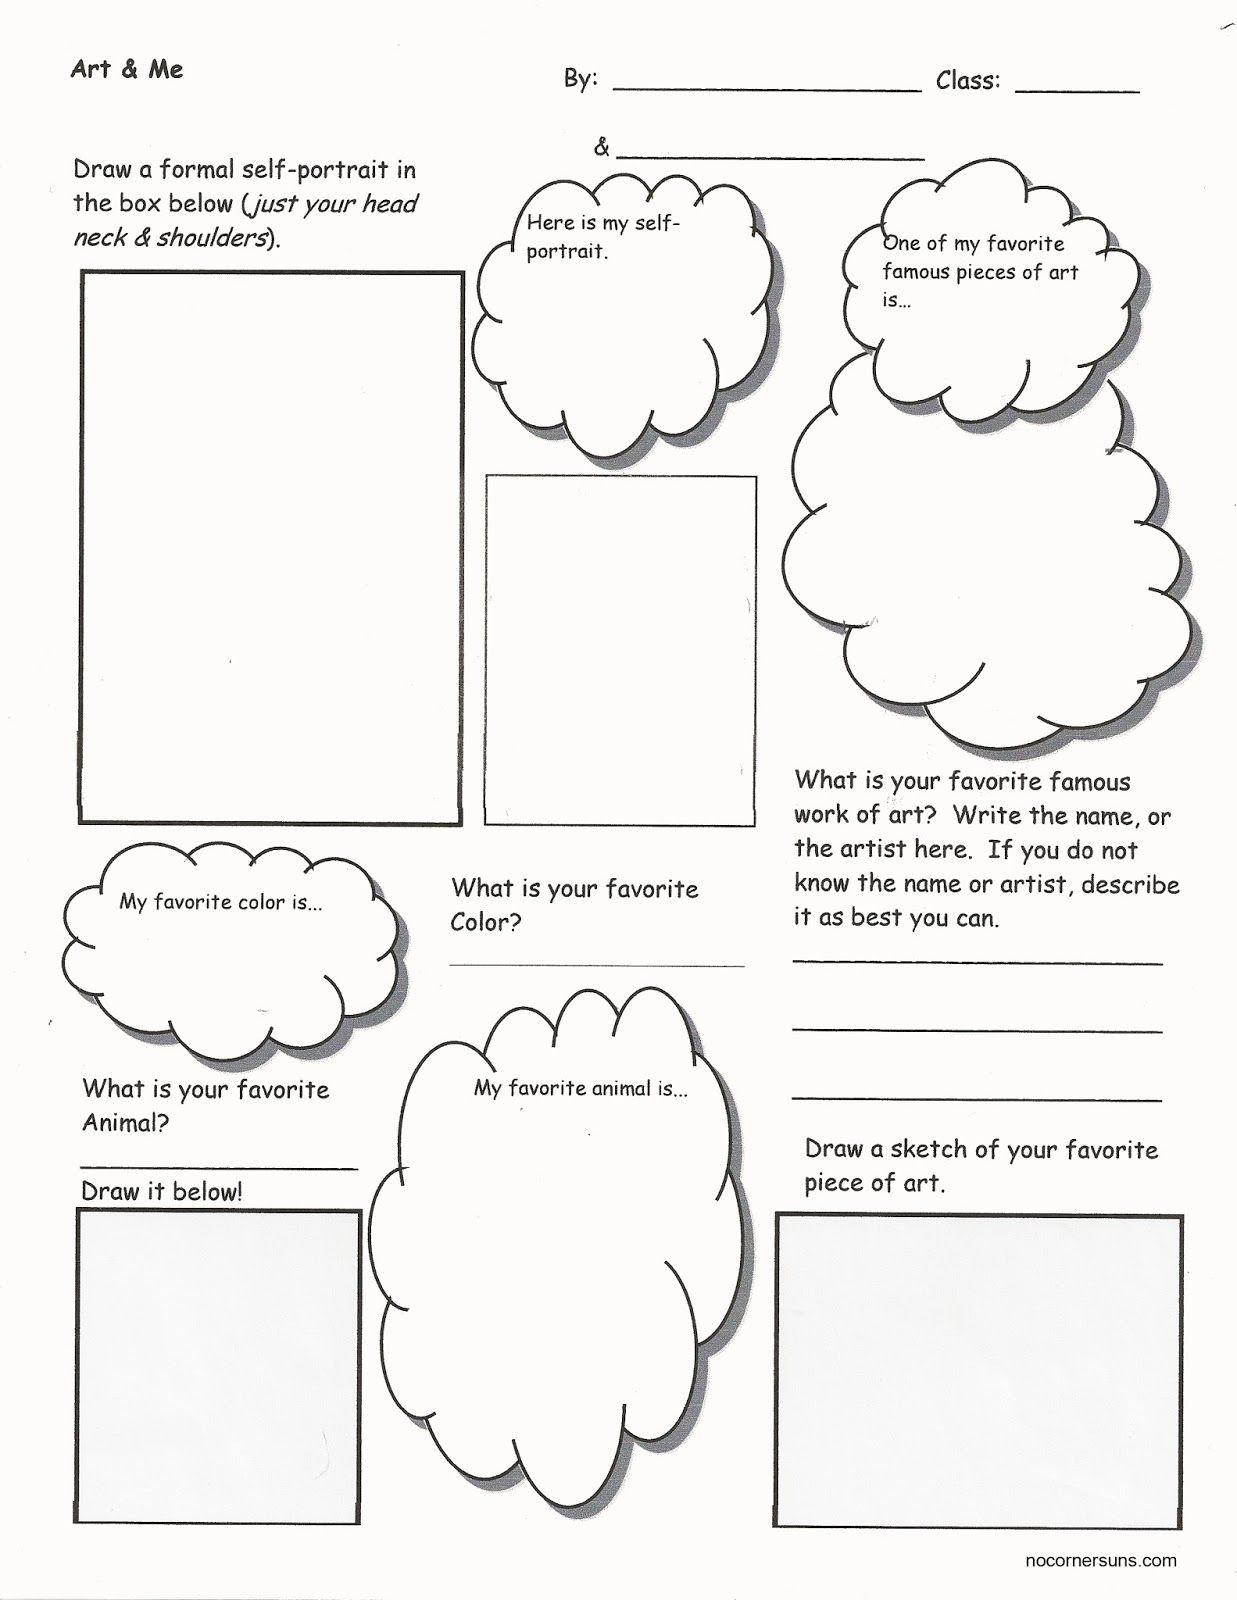 Art Worksheets Middle School Art & Me I Ting to Know You Worksheet that Helps